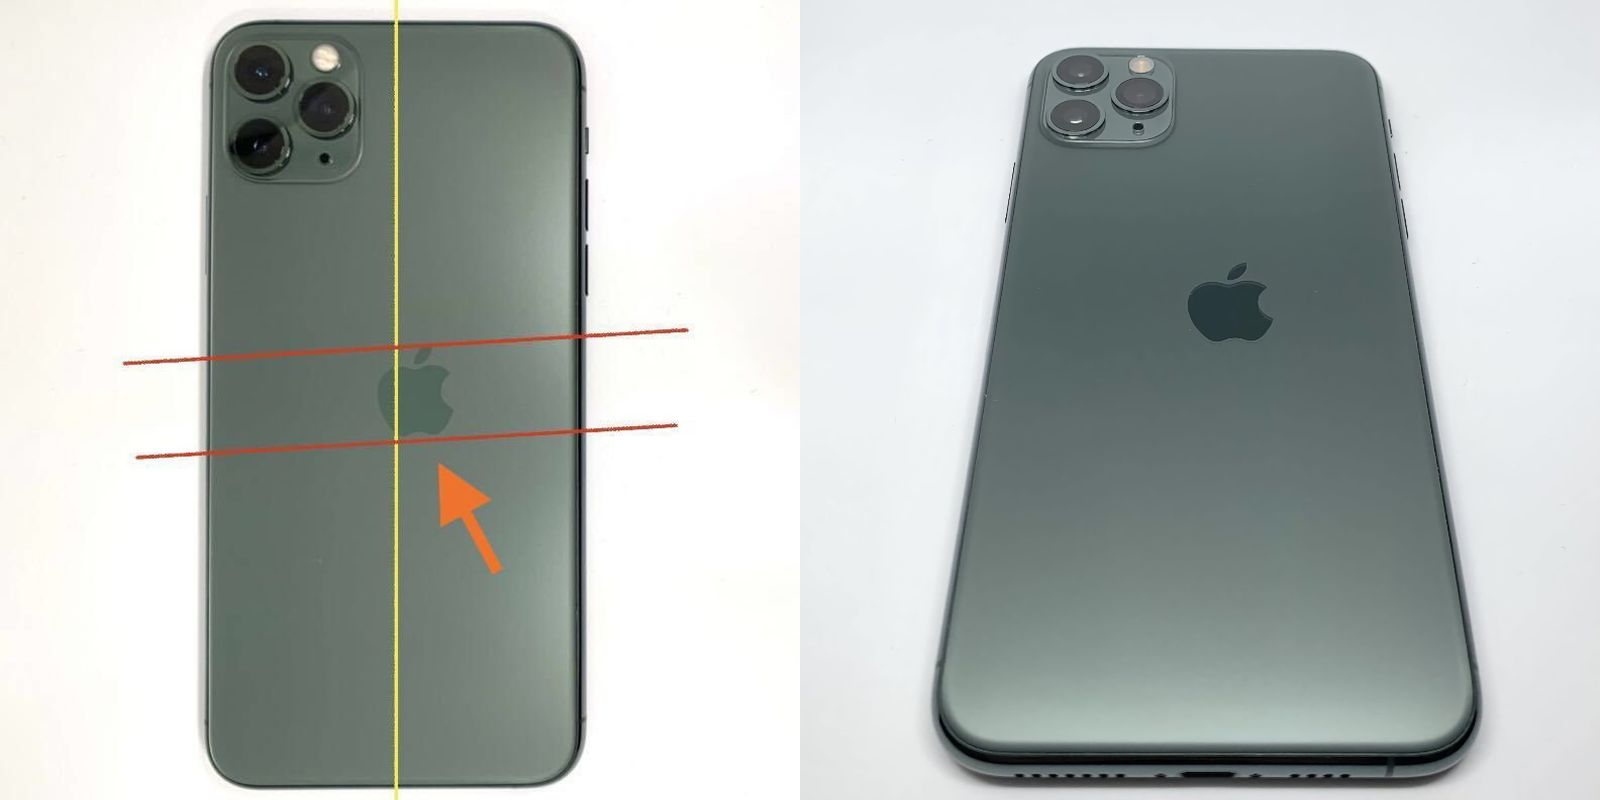 photo of Images Depict 'Extremely Rare' iPhone 11 Pro Prototype With Misaligned Apple Logo image